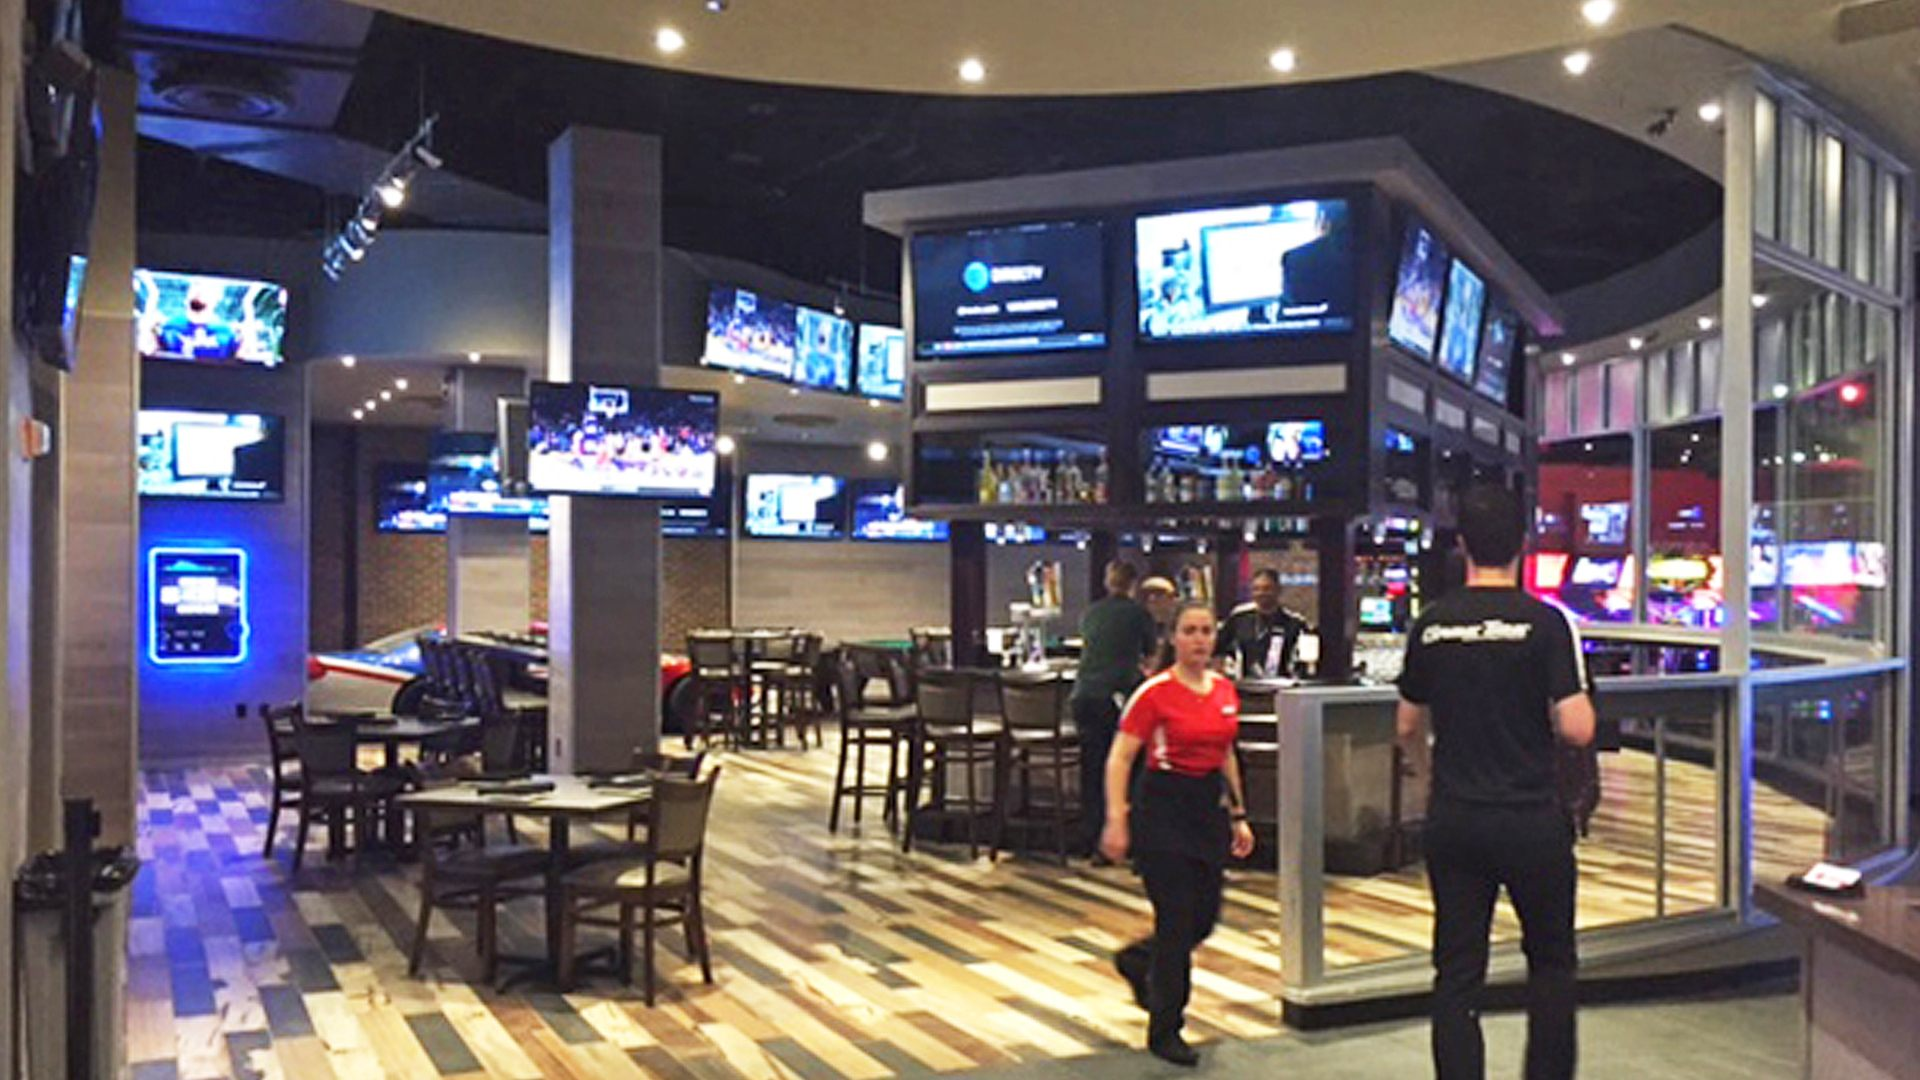 GameTime Tampa New Restaurant and Sports Bar